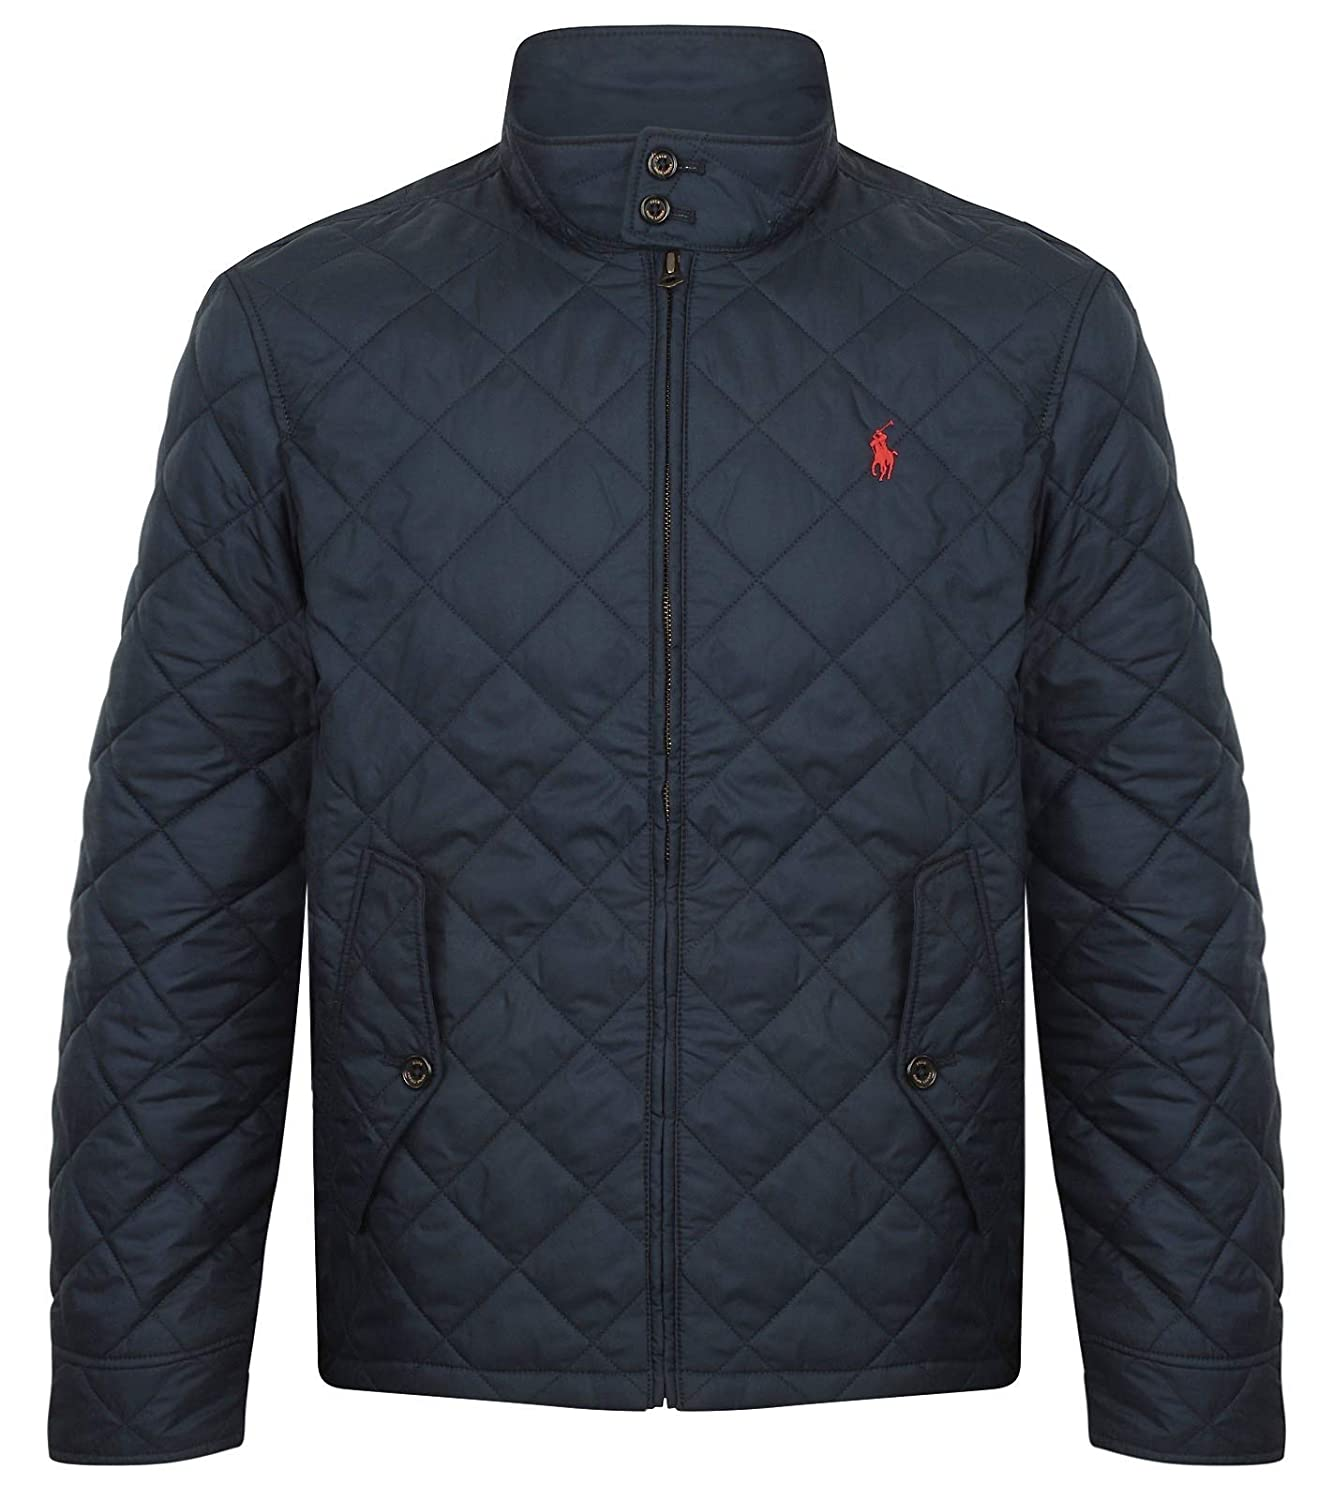 6c68a528b6e1 Polo Ralph Lauren Men s Quilted Barracuda Jacket Navy  Amazon.co.uk   Clothing